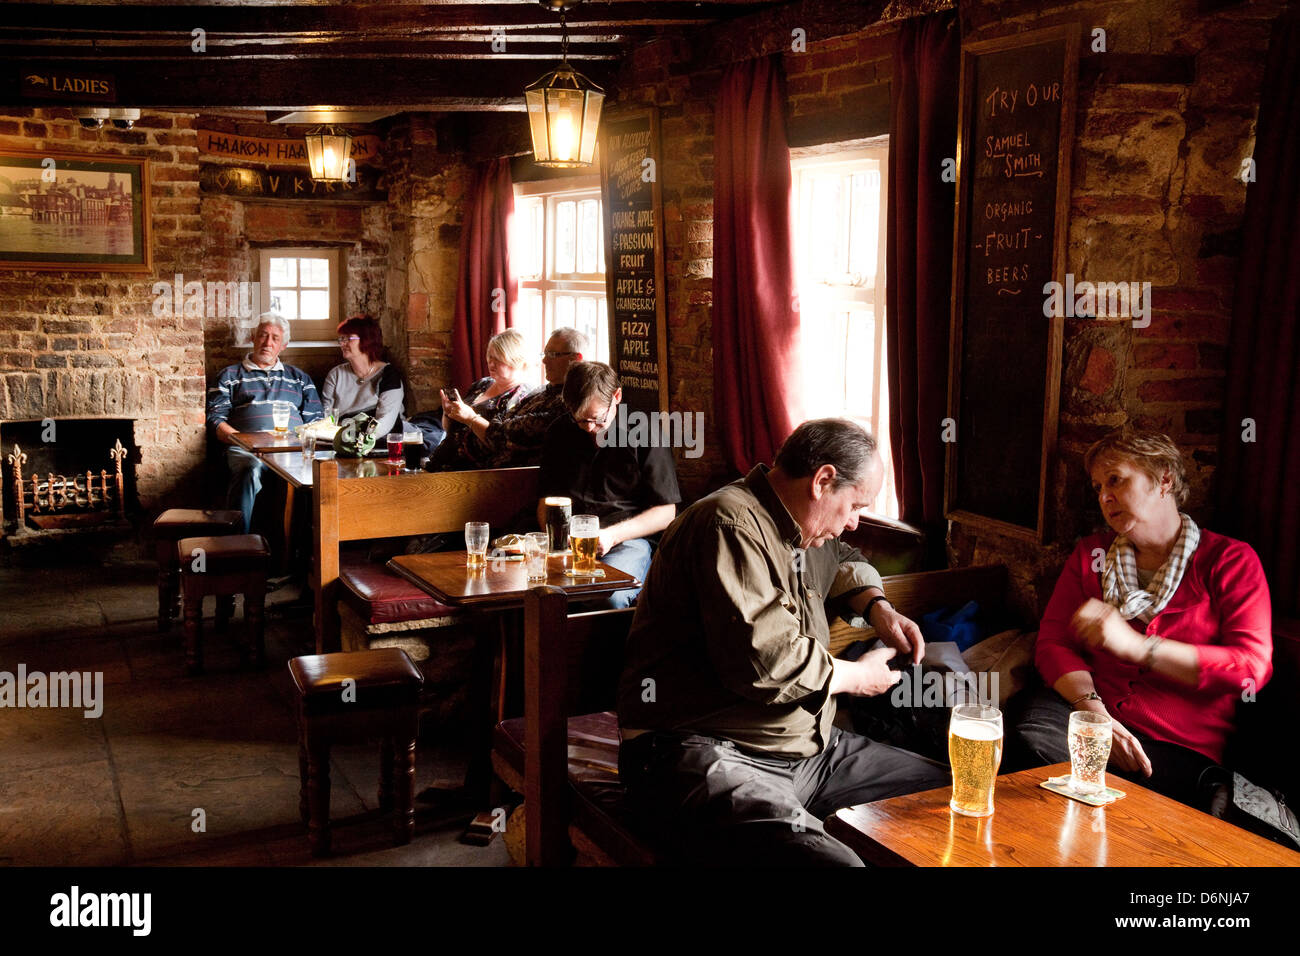 People sitting drinking in the interior of the Kings Arms Pub, York, Yorkshire, UK - Stock Image